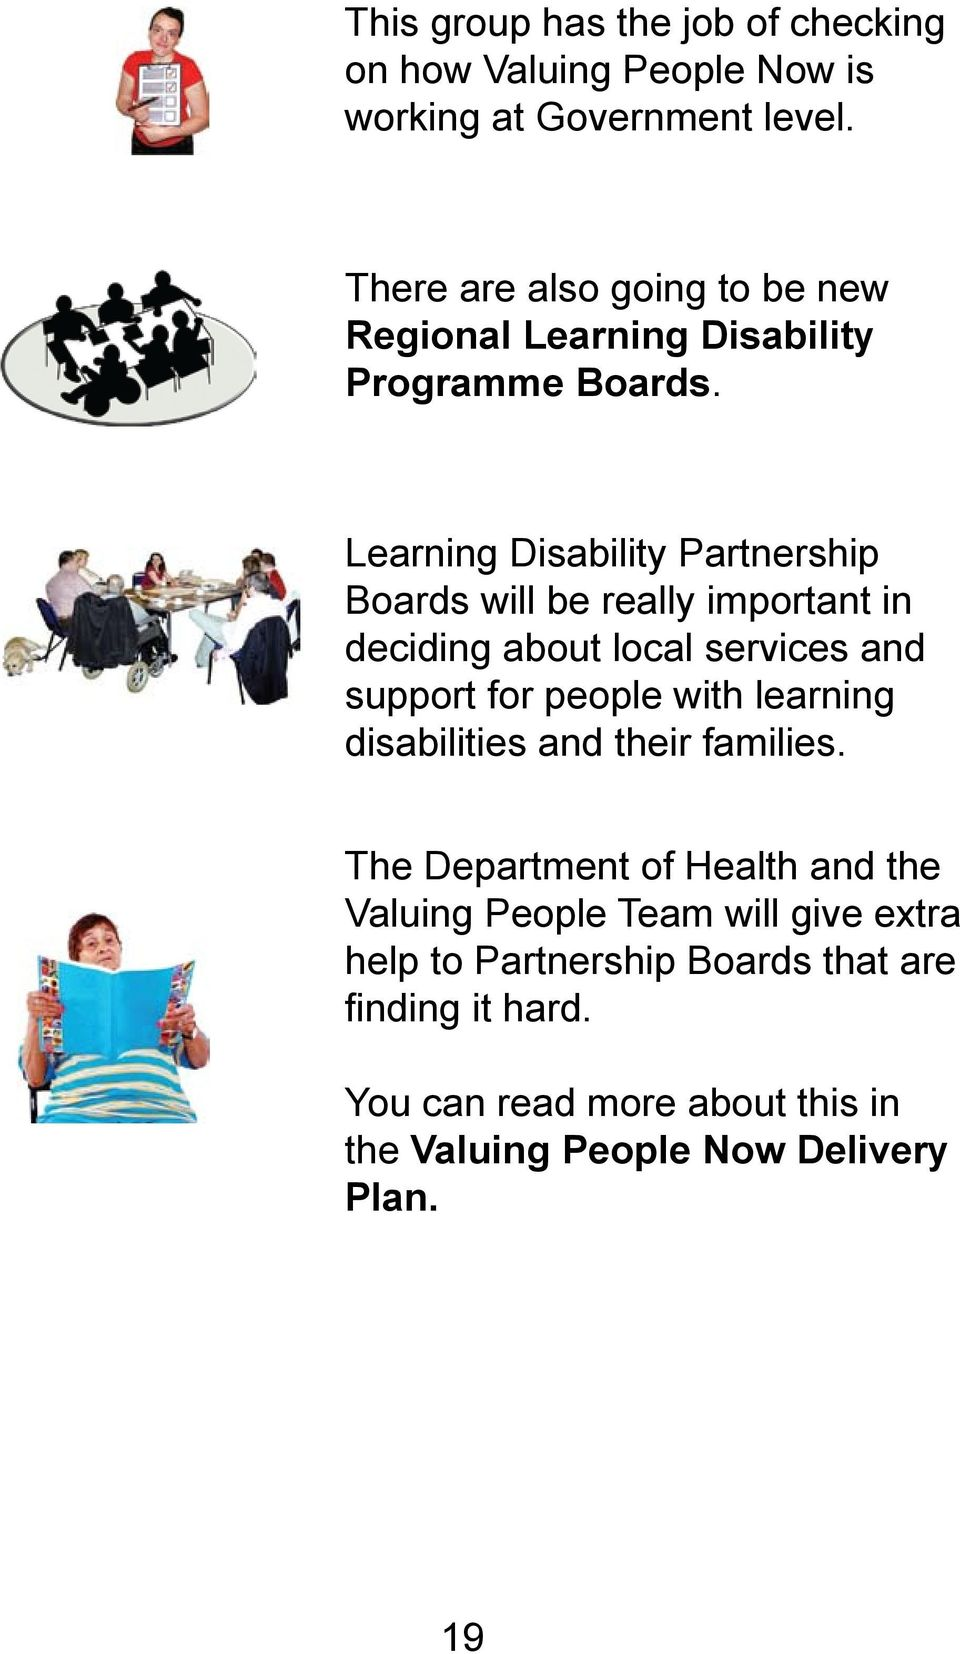 Learning Disability Partnership Boards will be really important in deciding about local services and support for people with